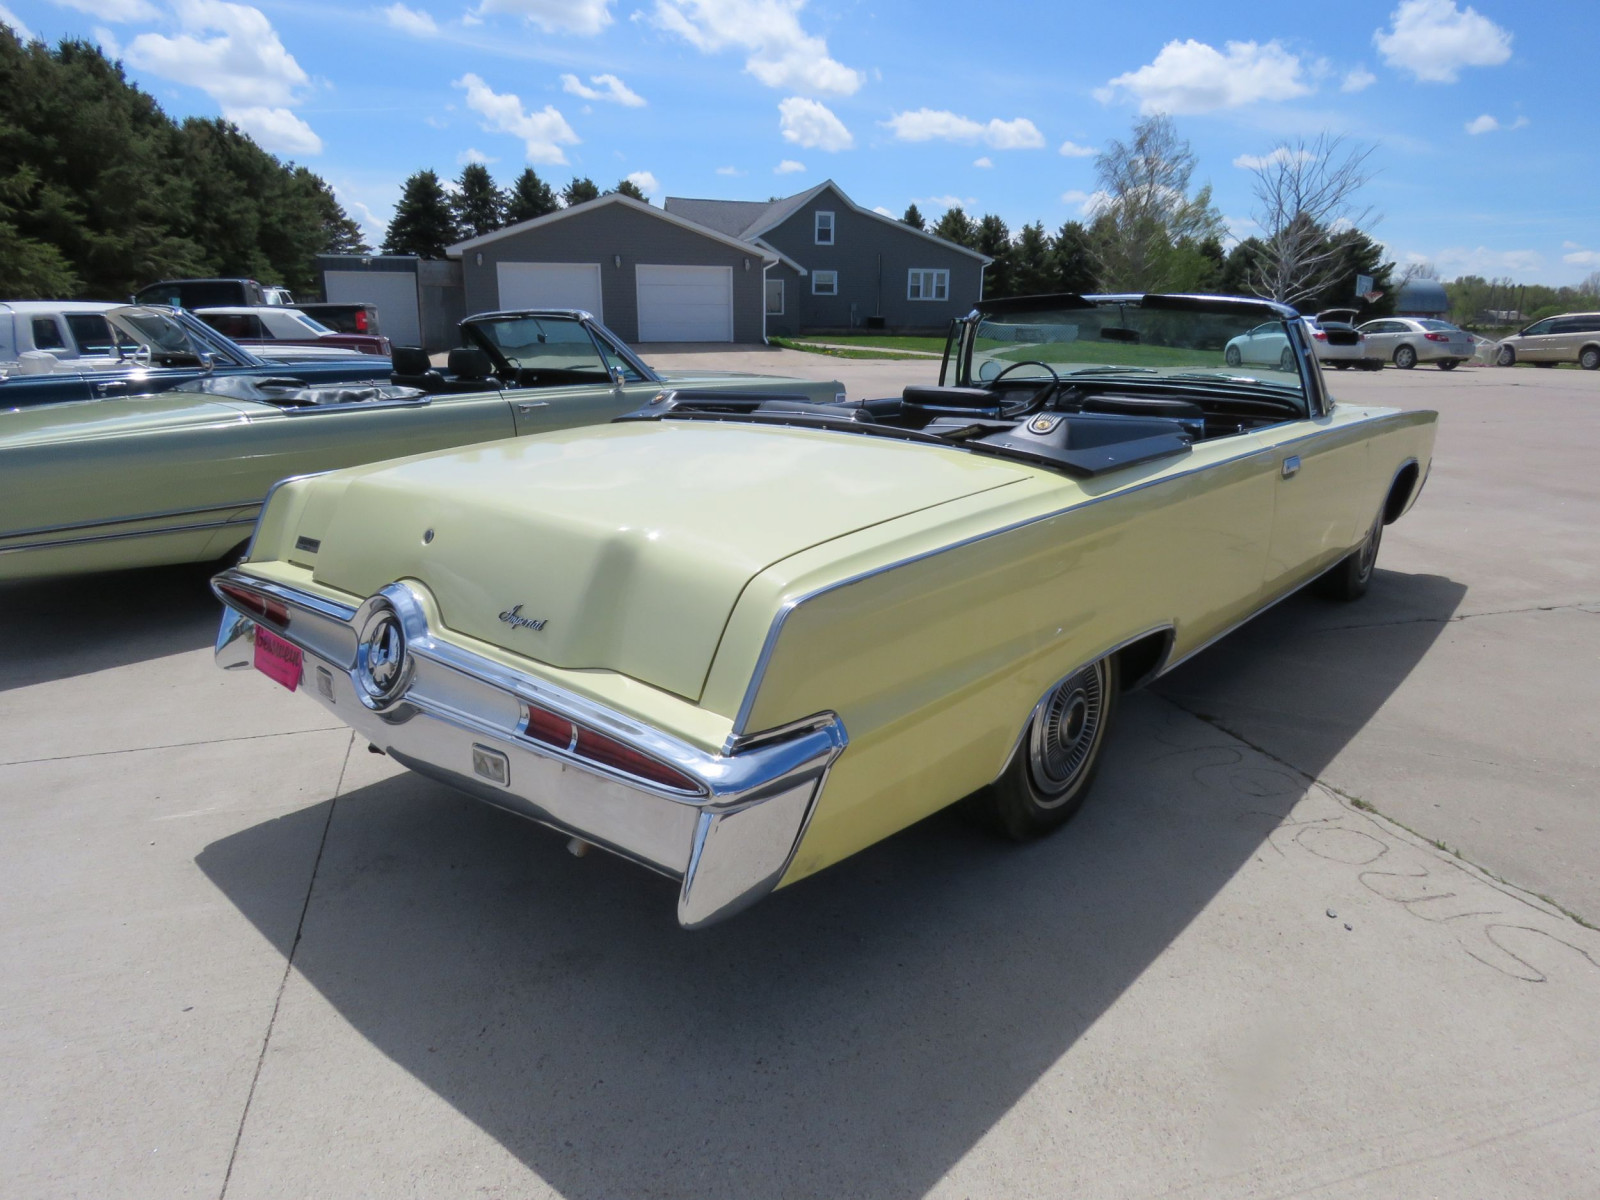 1966 Chrysler Imperial Crown Convertible - Image 5